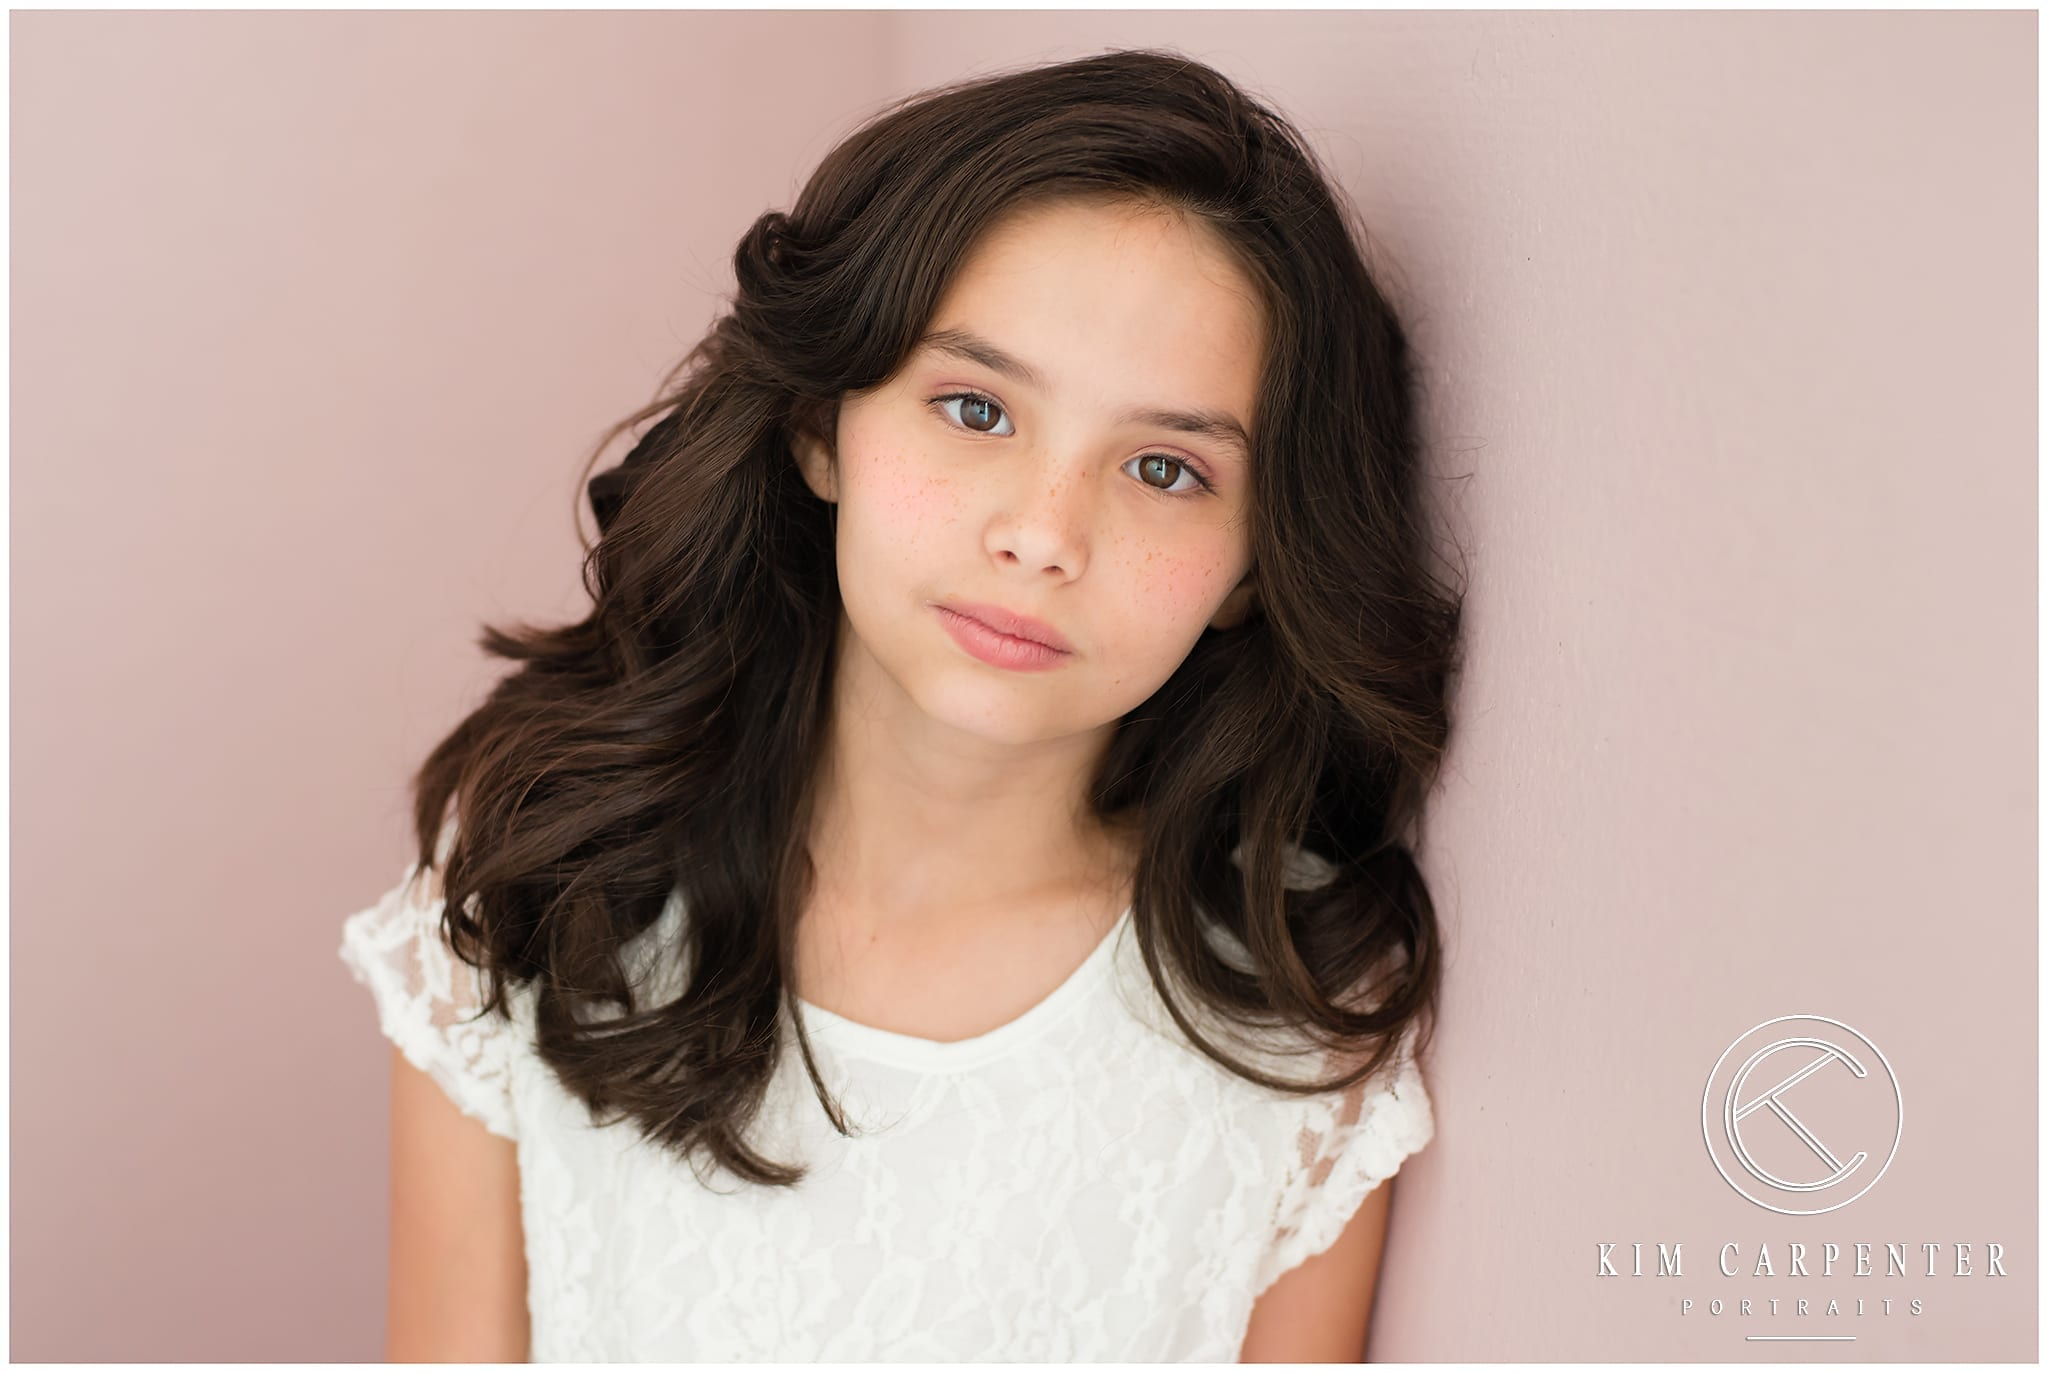 Girl leaning against a pink wall looking at camera.